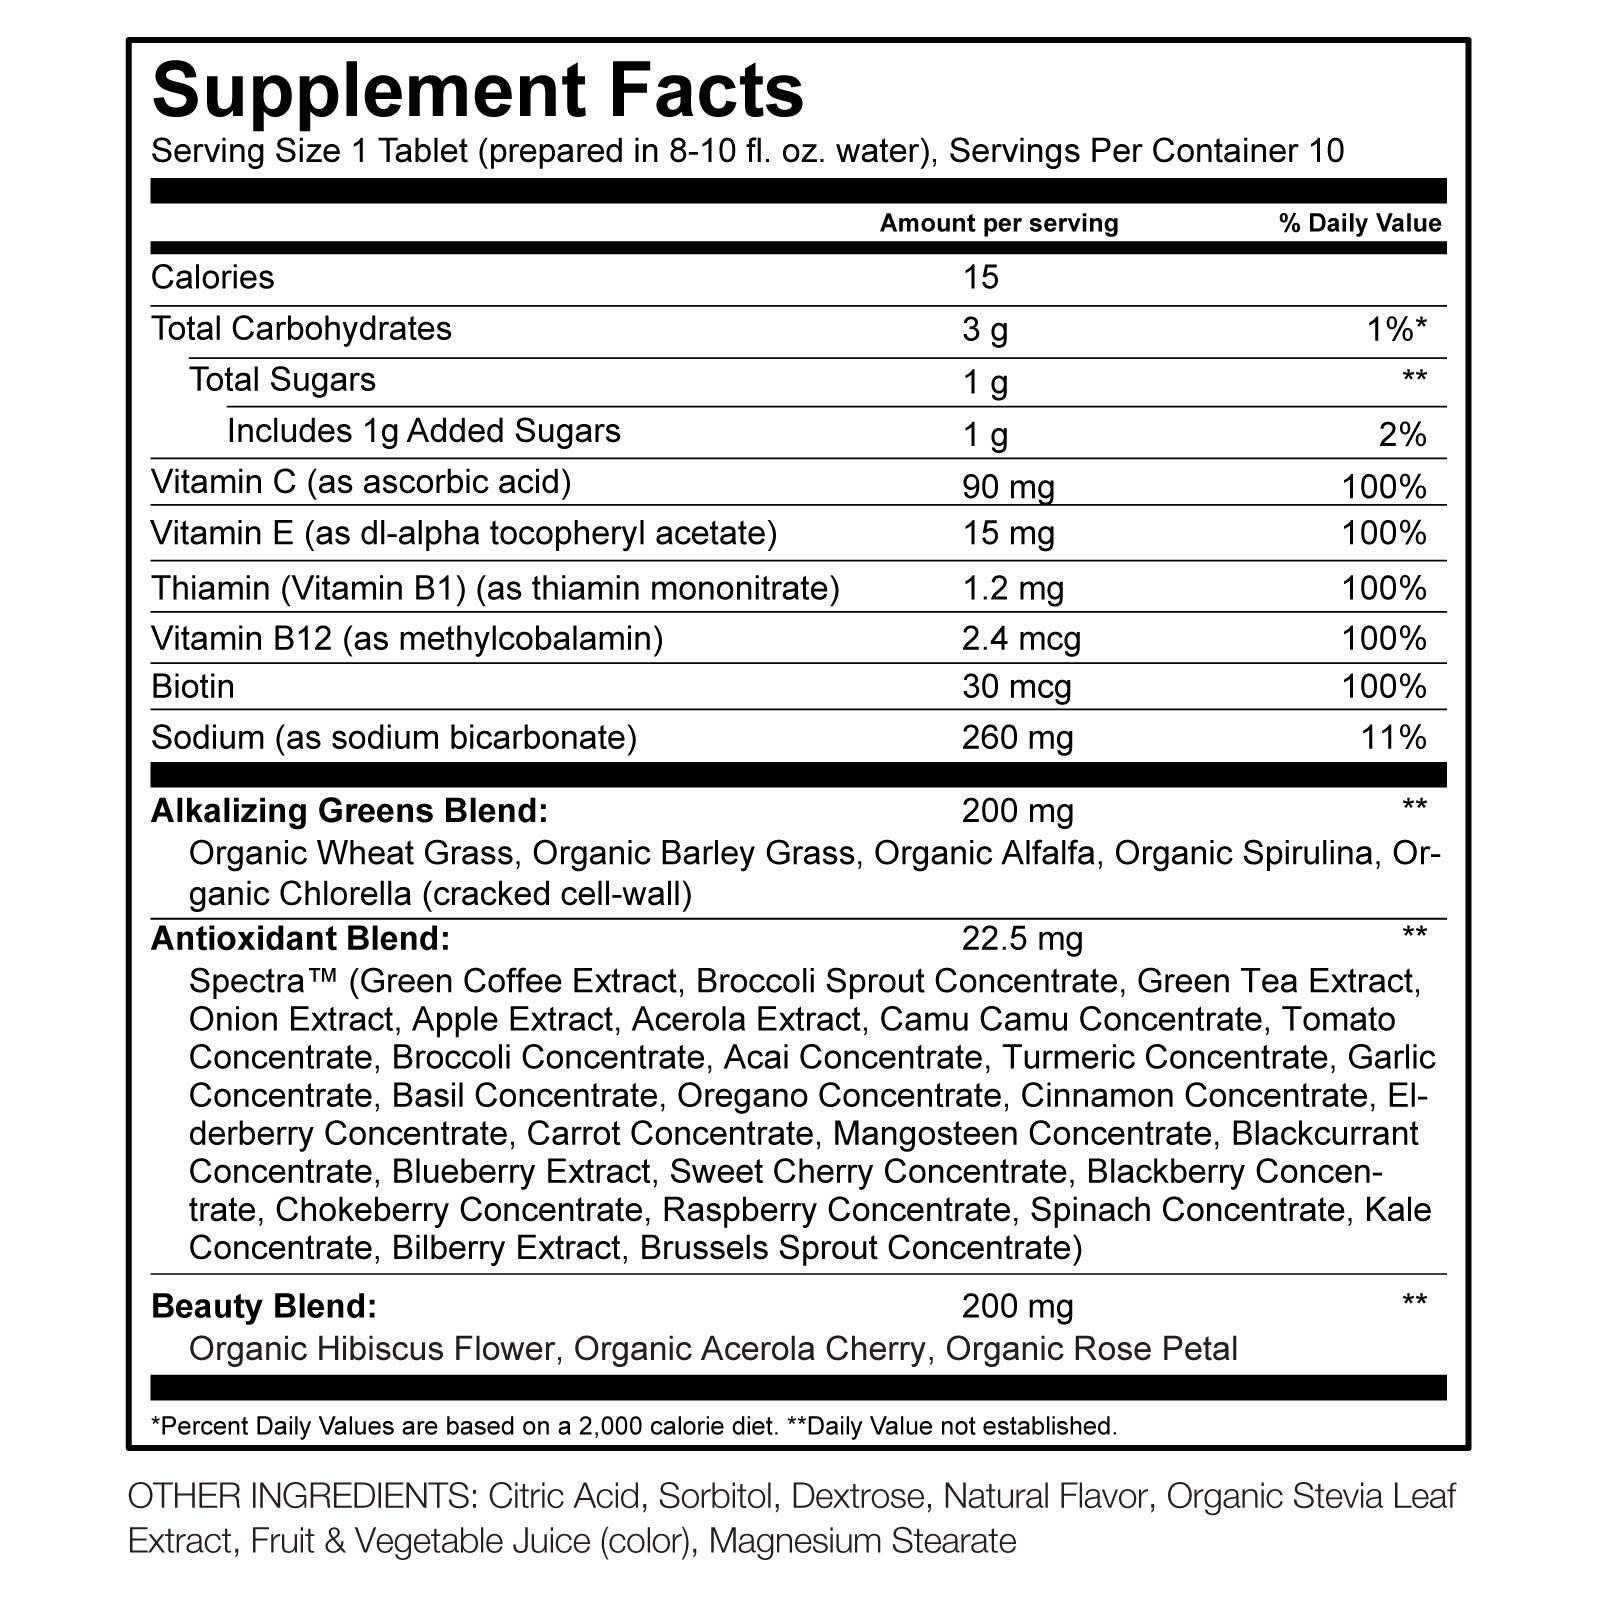 Pink Lemonade Green Superfood Effervescent Nutritional Information By Amazing Grass